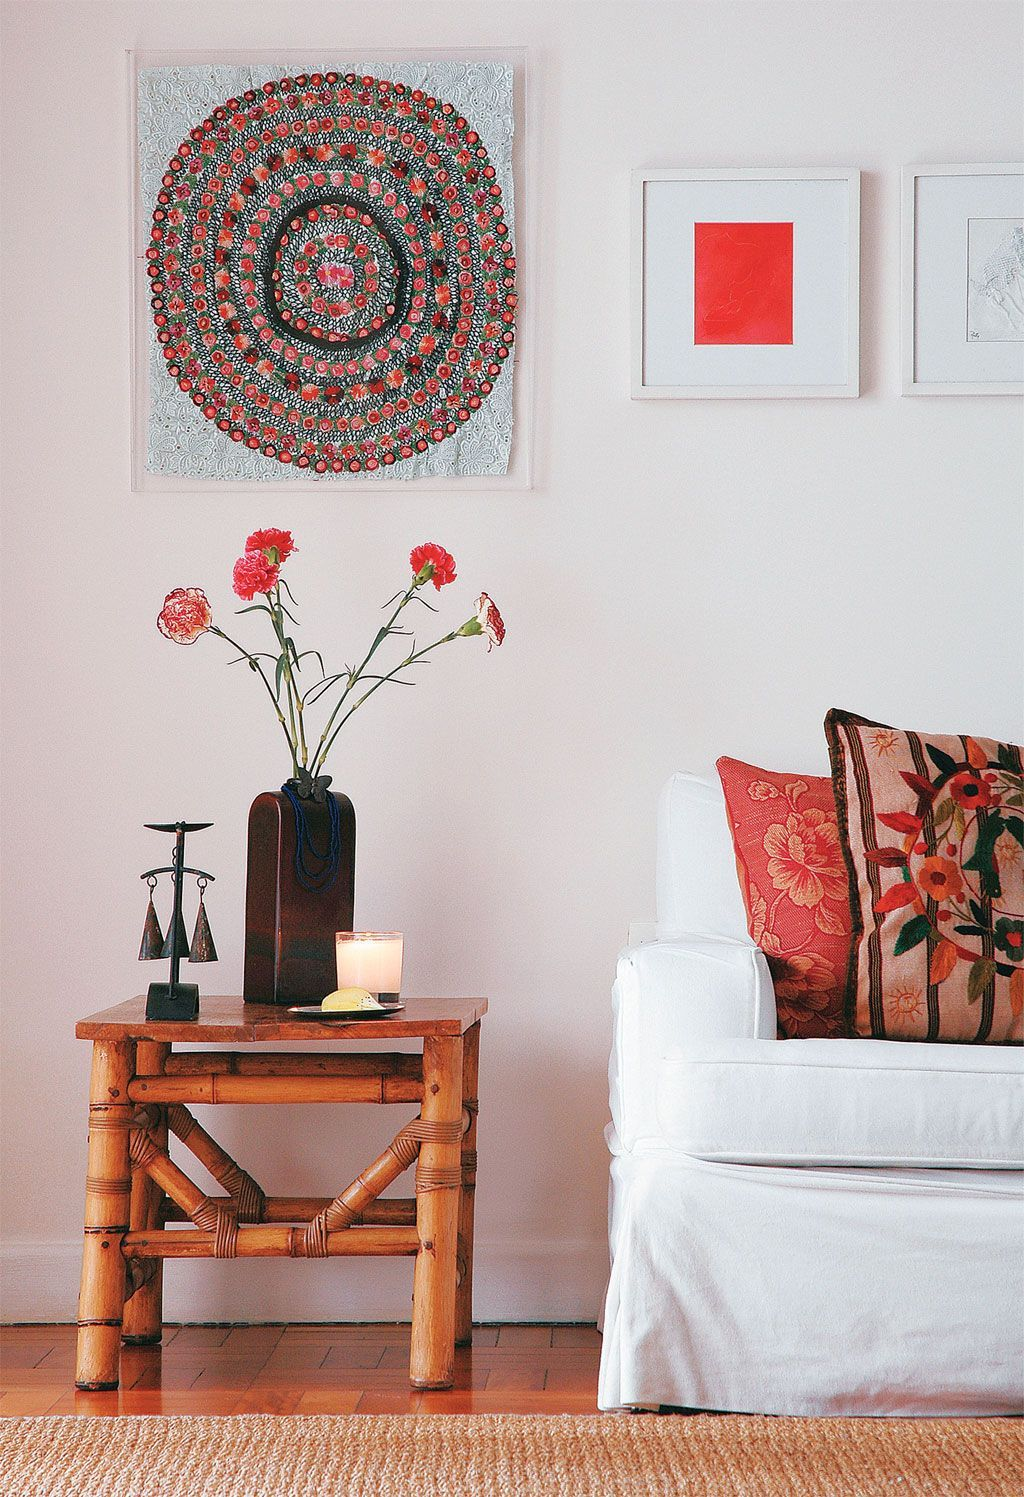 Find more feng shui home decor techniques at my website.